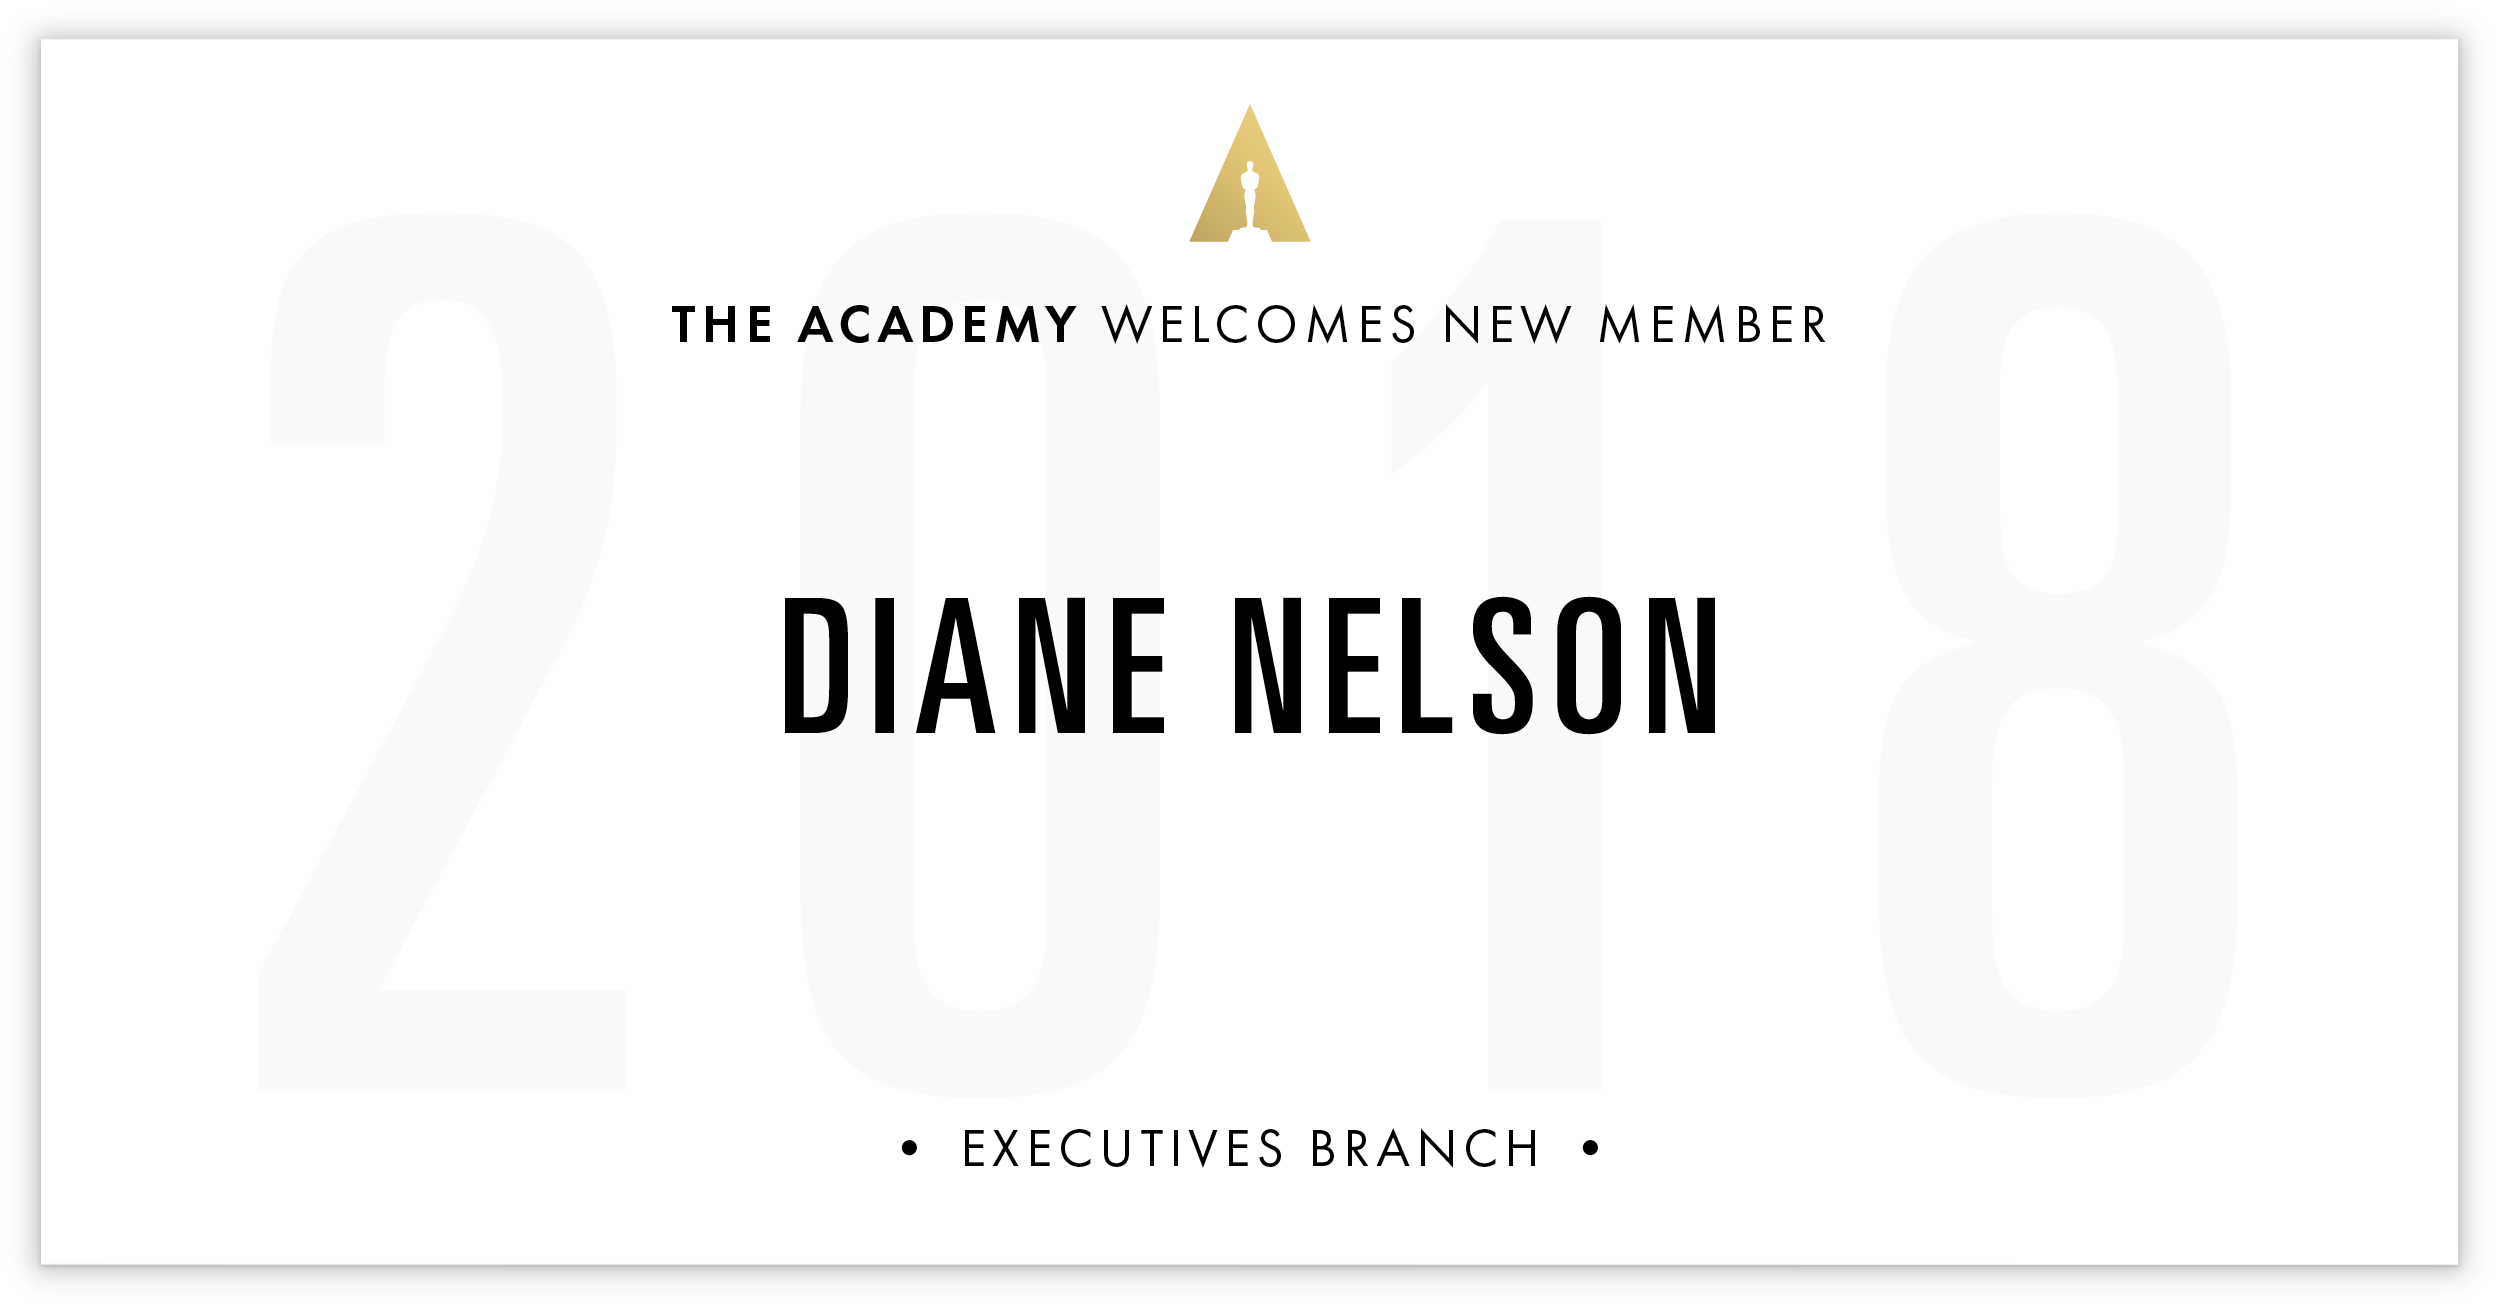 Diane Nelson is invited!